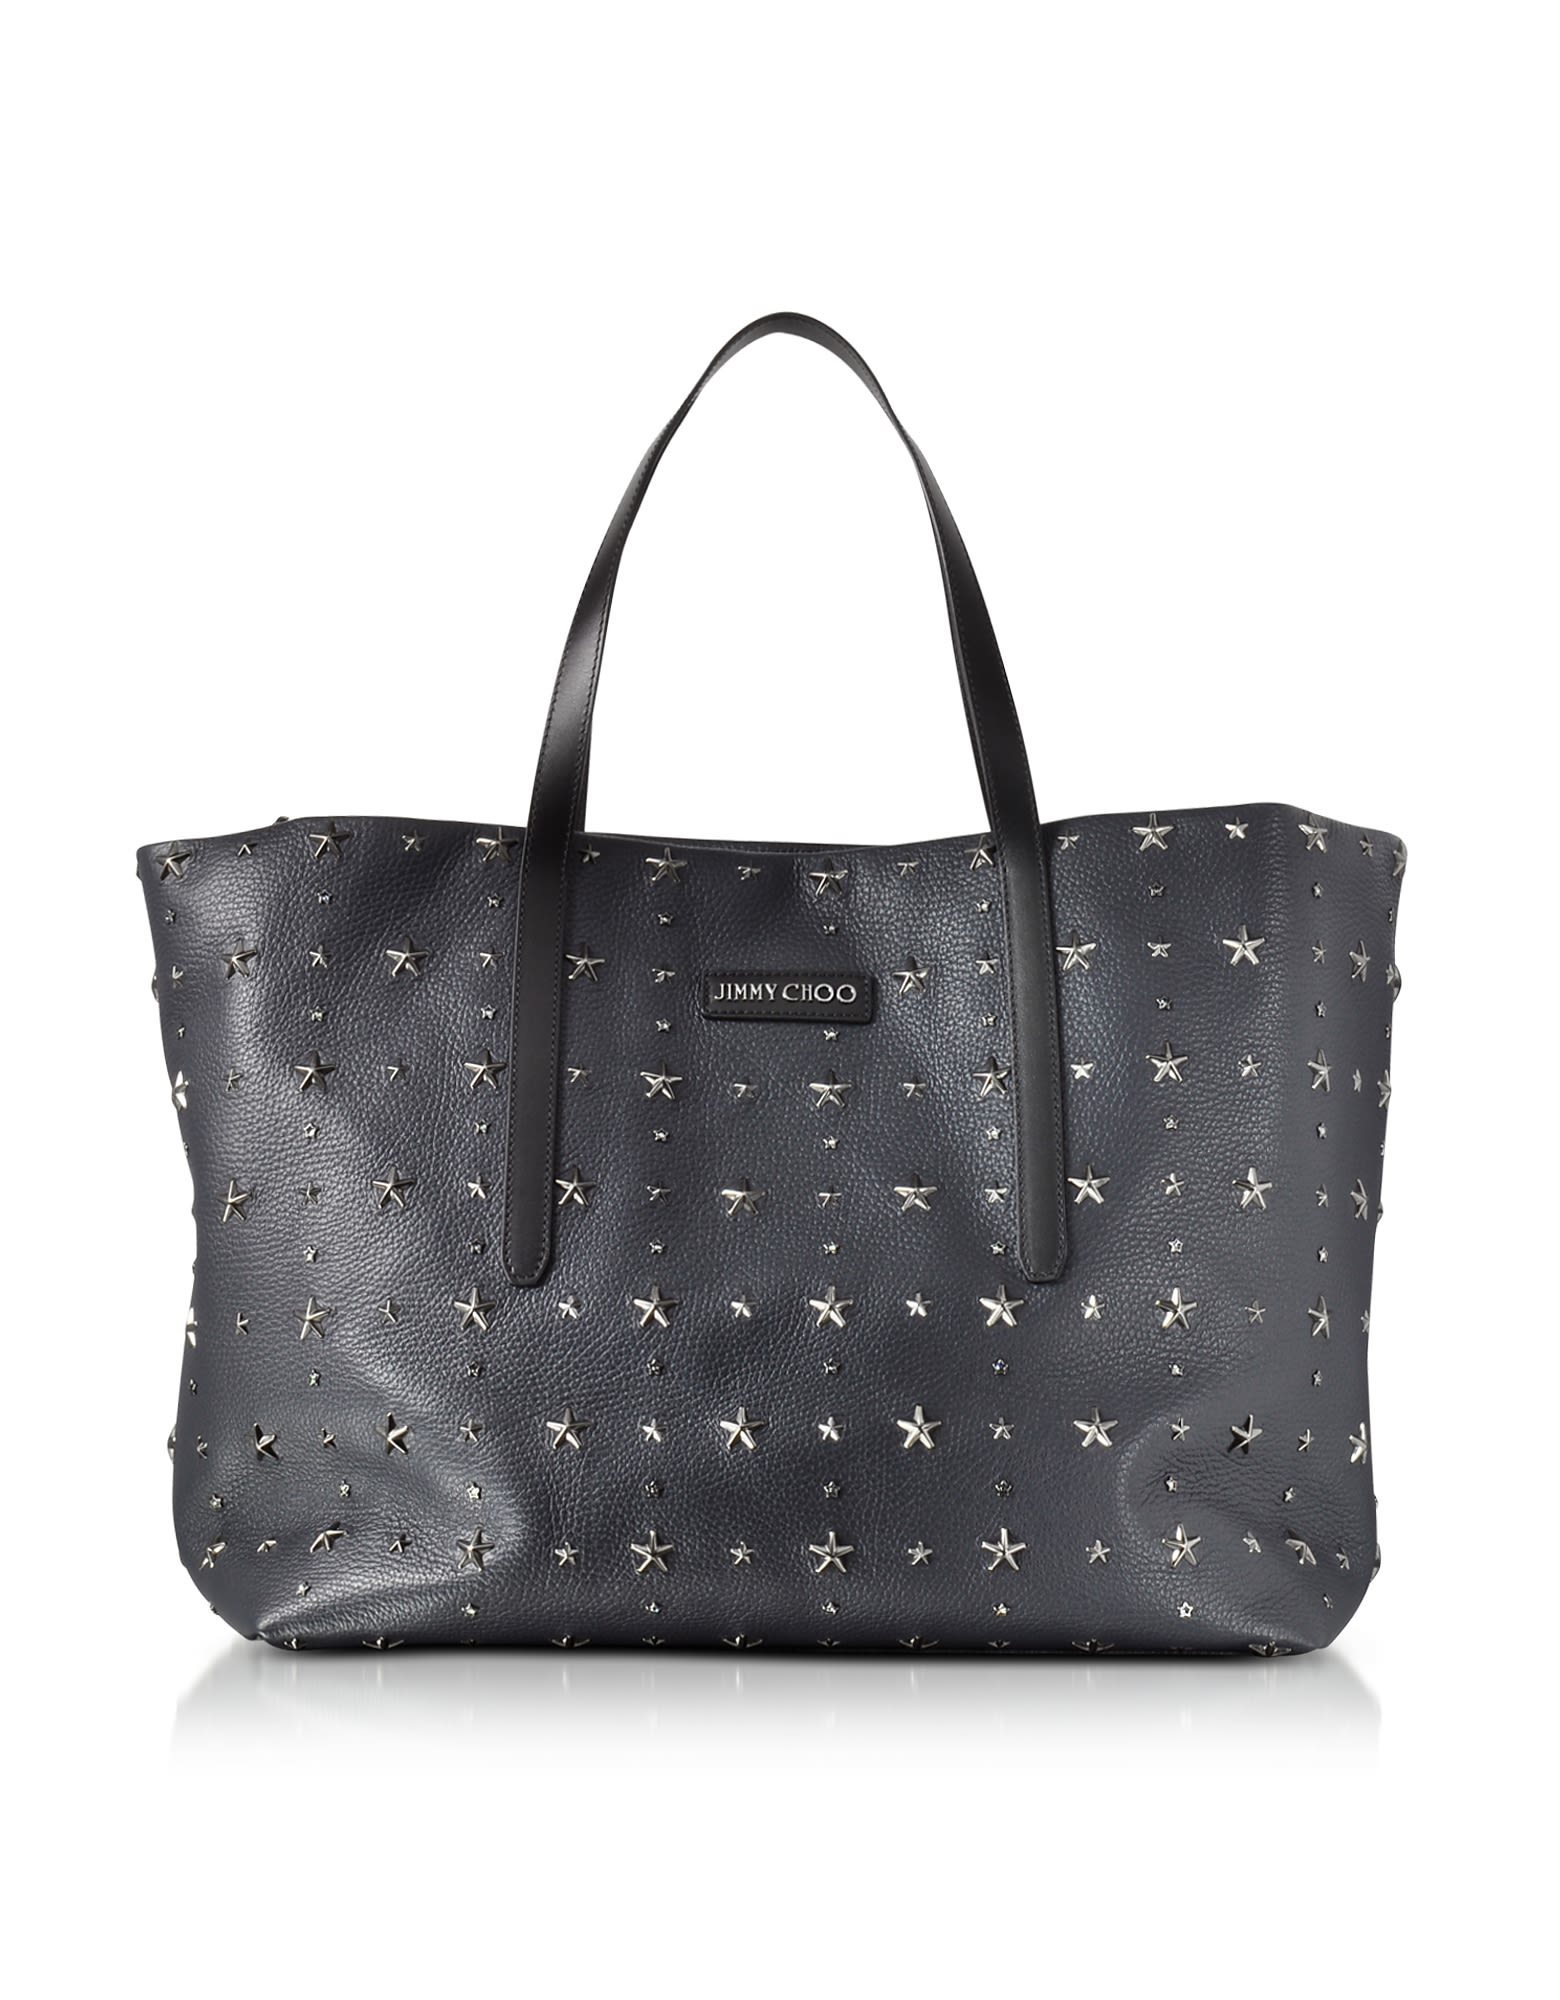 PIMLICO NAVY-SLATE LEATHER LARGE TOTE